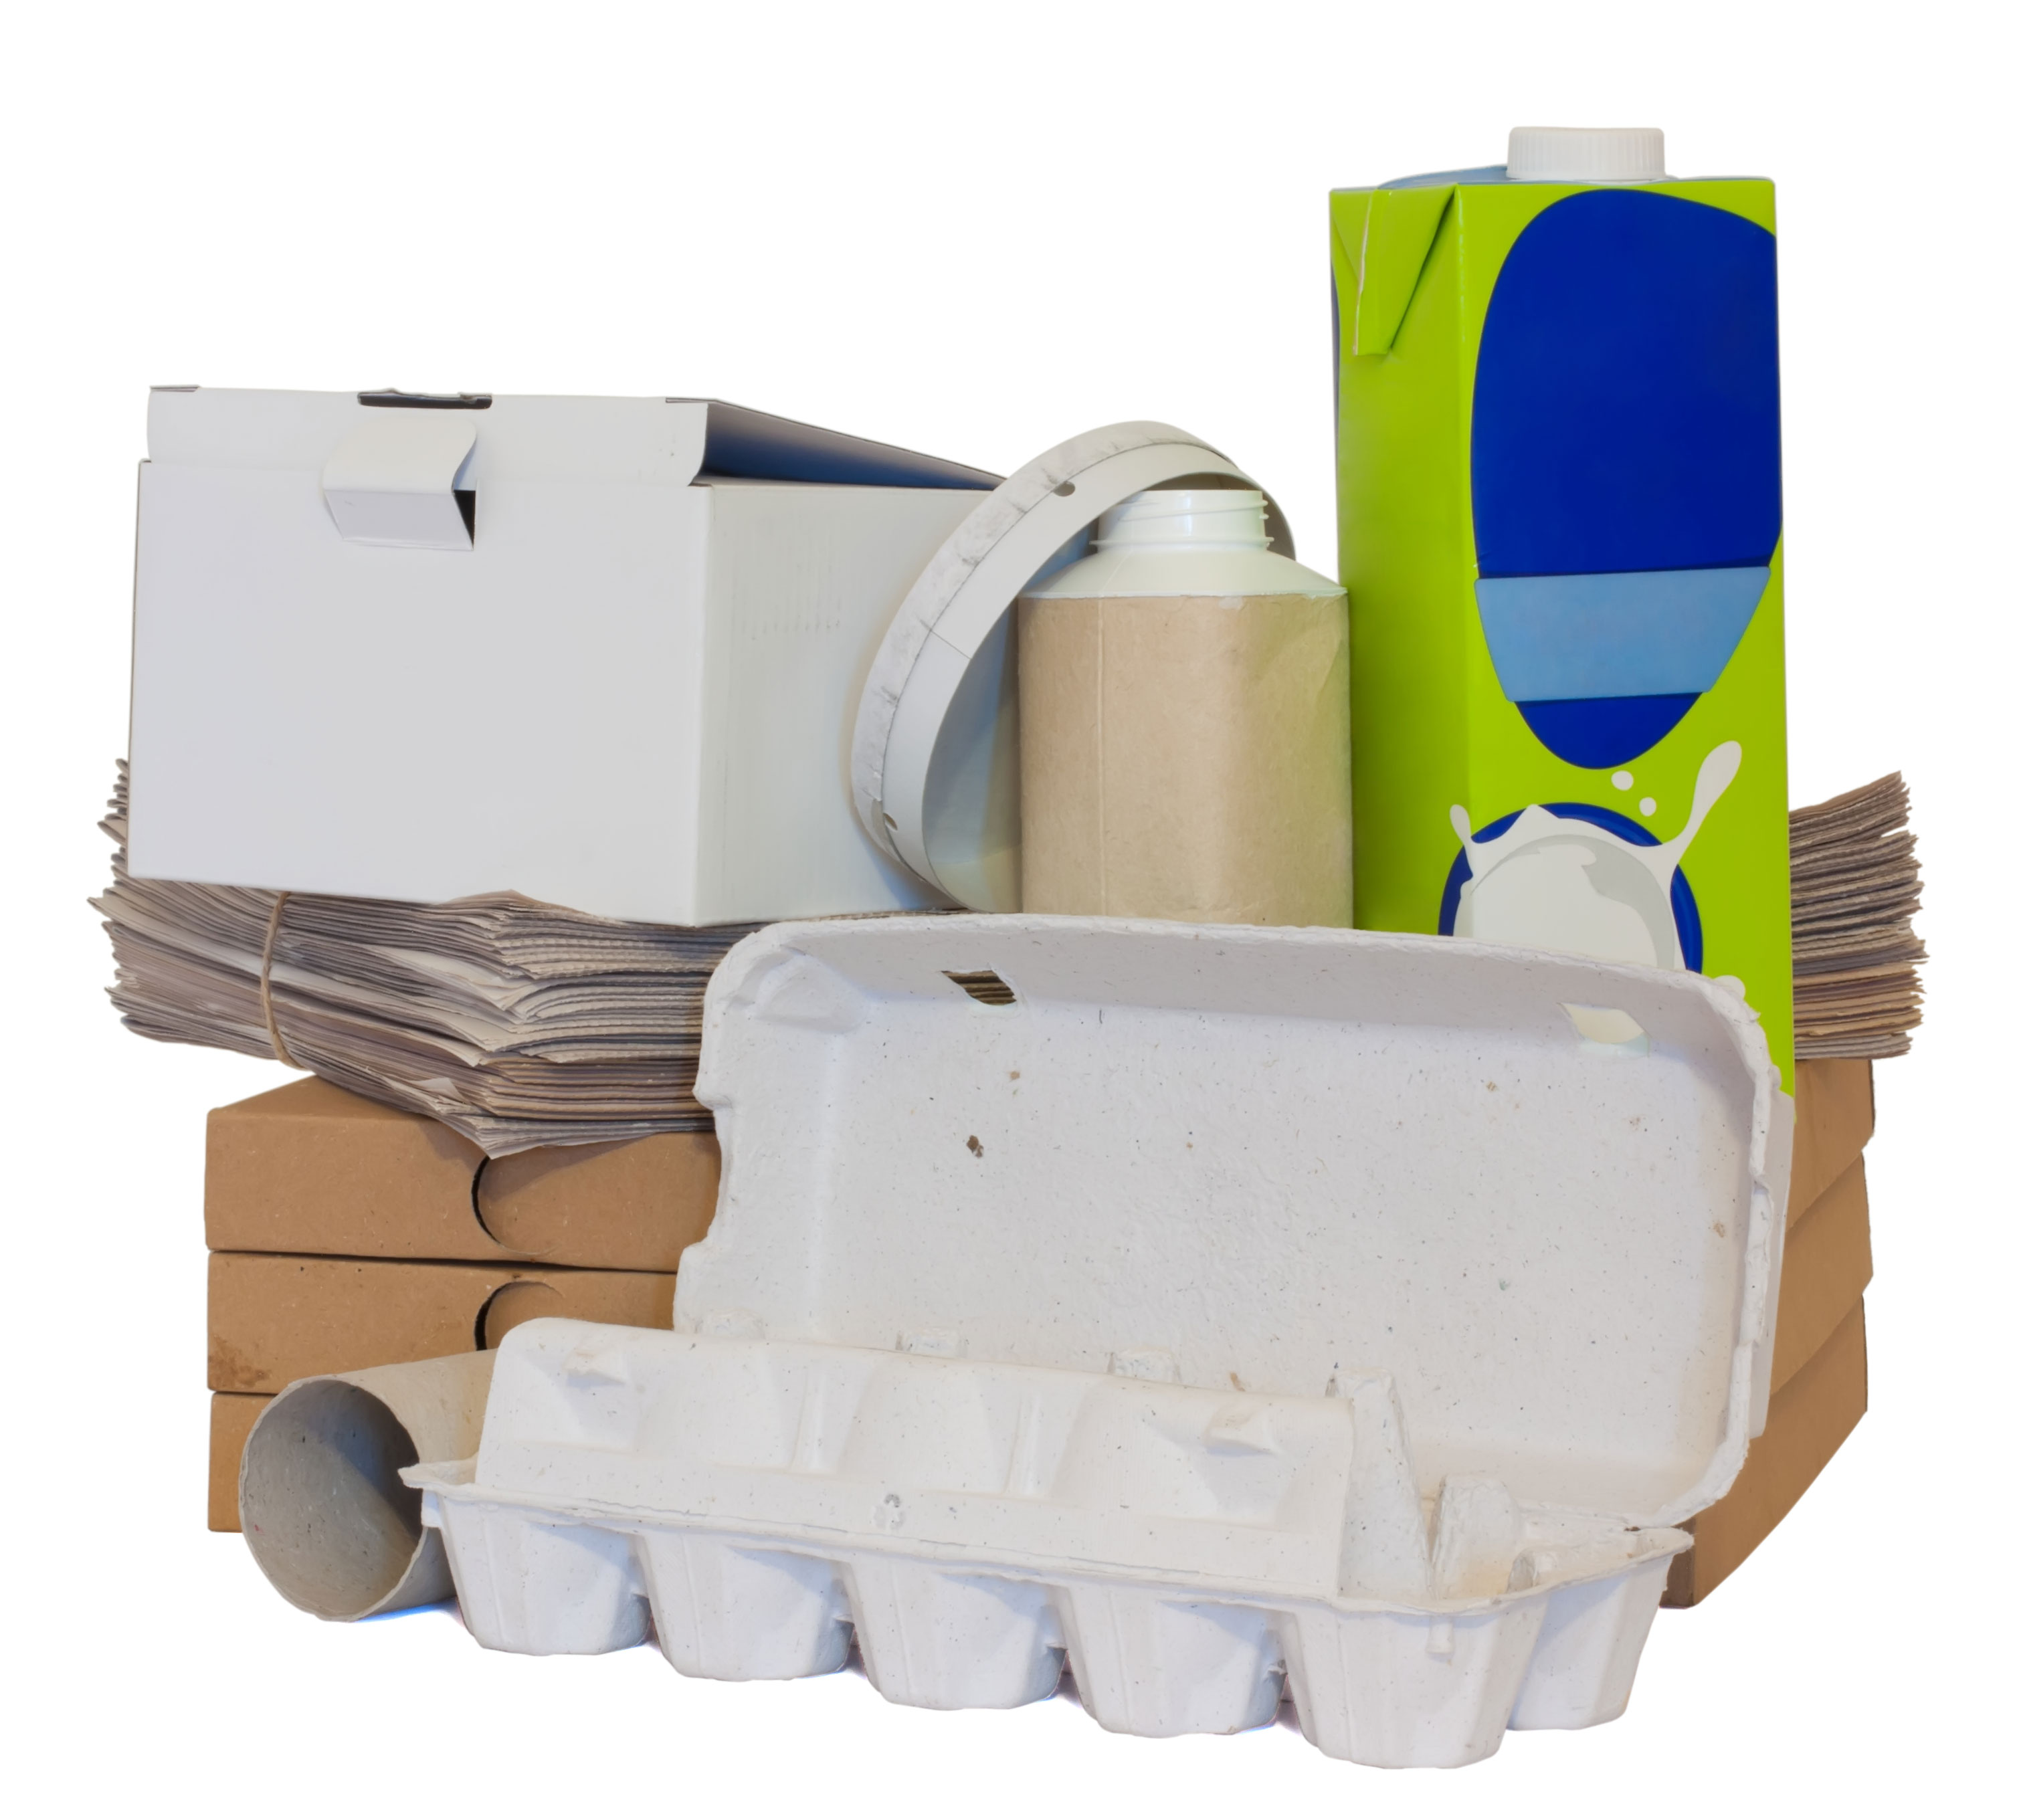 co-mingled recycling curbside pick-up cardboard containers